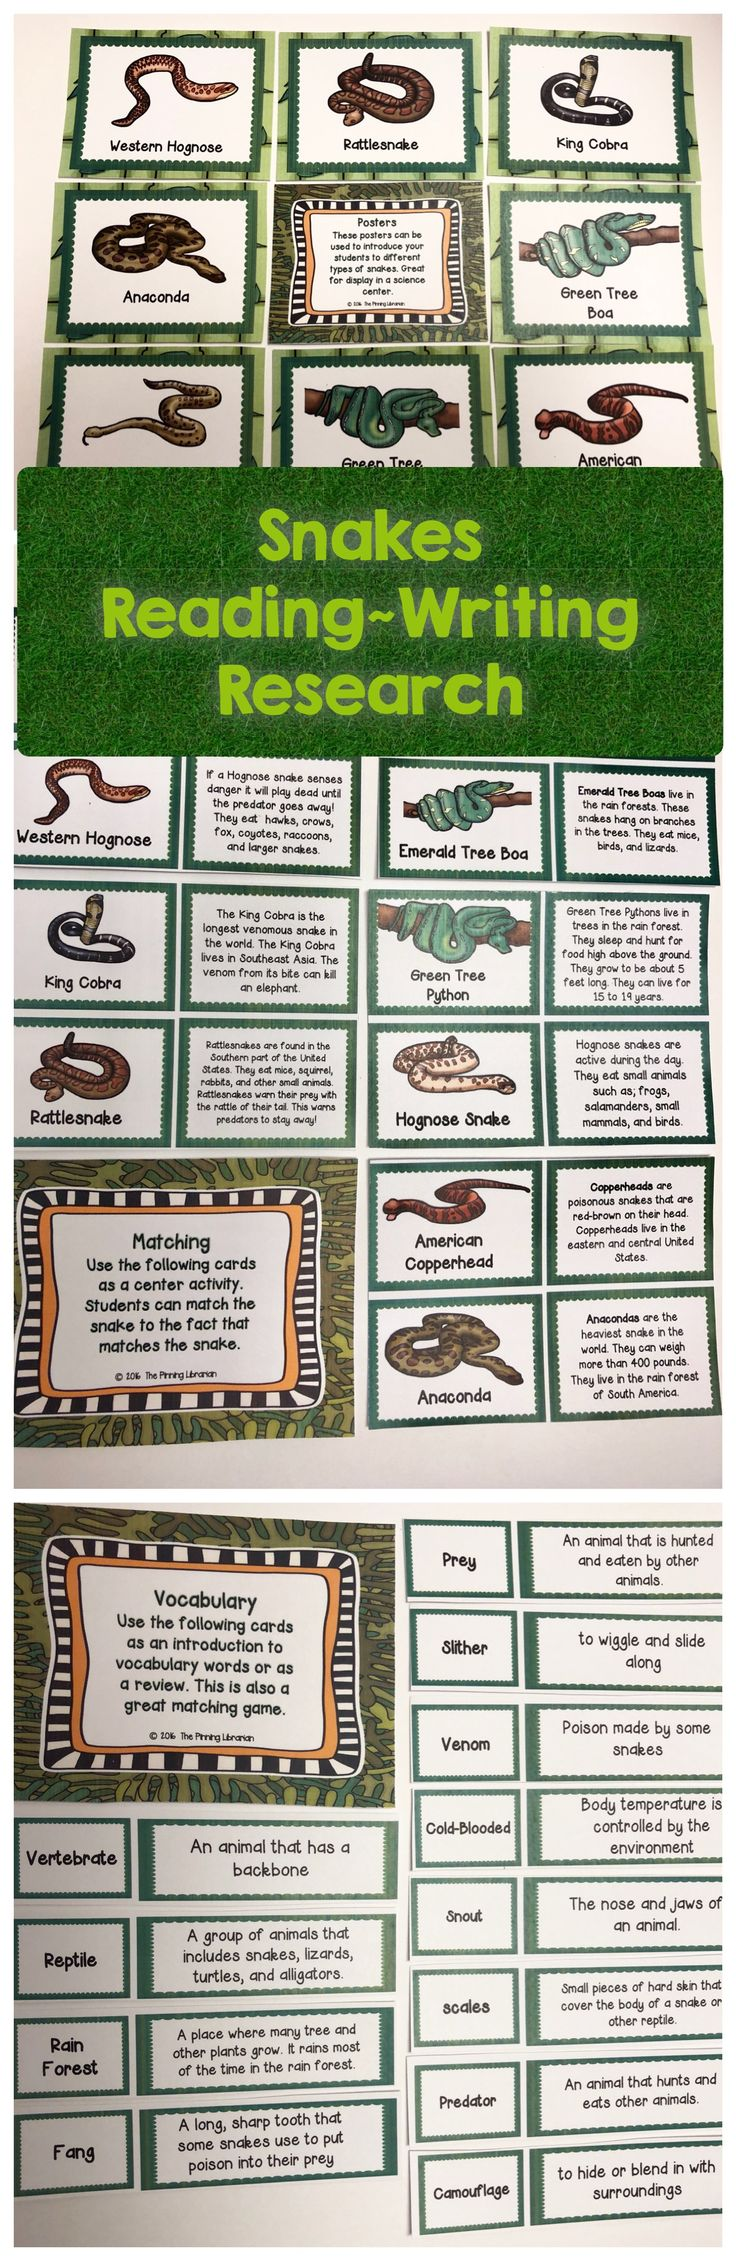 Snakes-Reading Writing and Research packet contains so many activities and is a great way to get your students excited about snakes! Includes: reading passages, posters, vocabulary matching, types of snakes matching, a powerpoint presentation about snakes, and more!